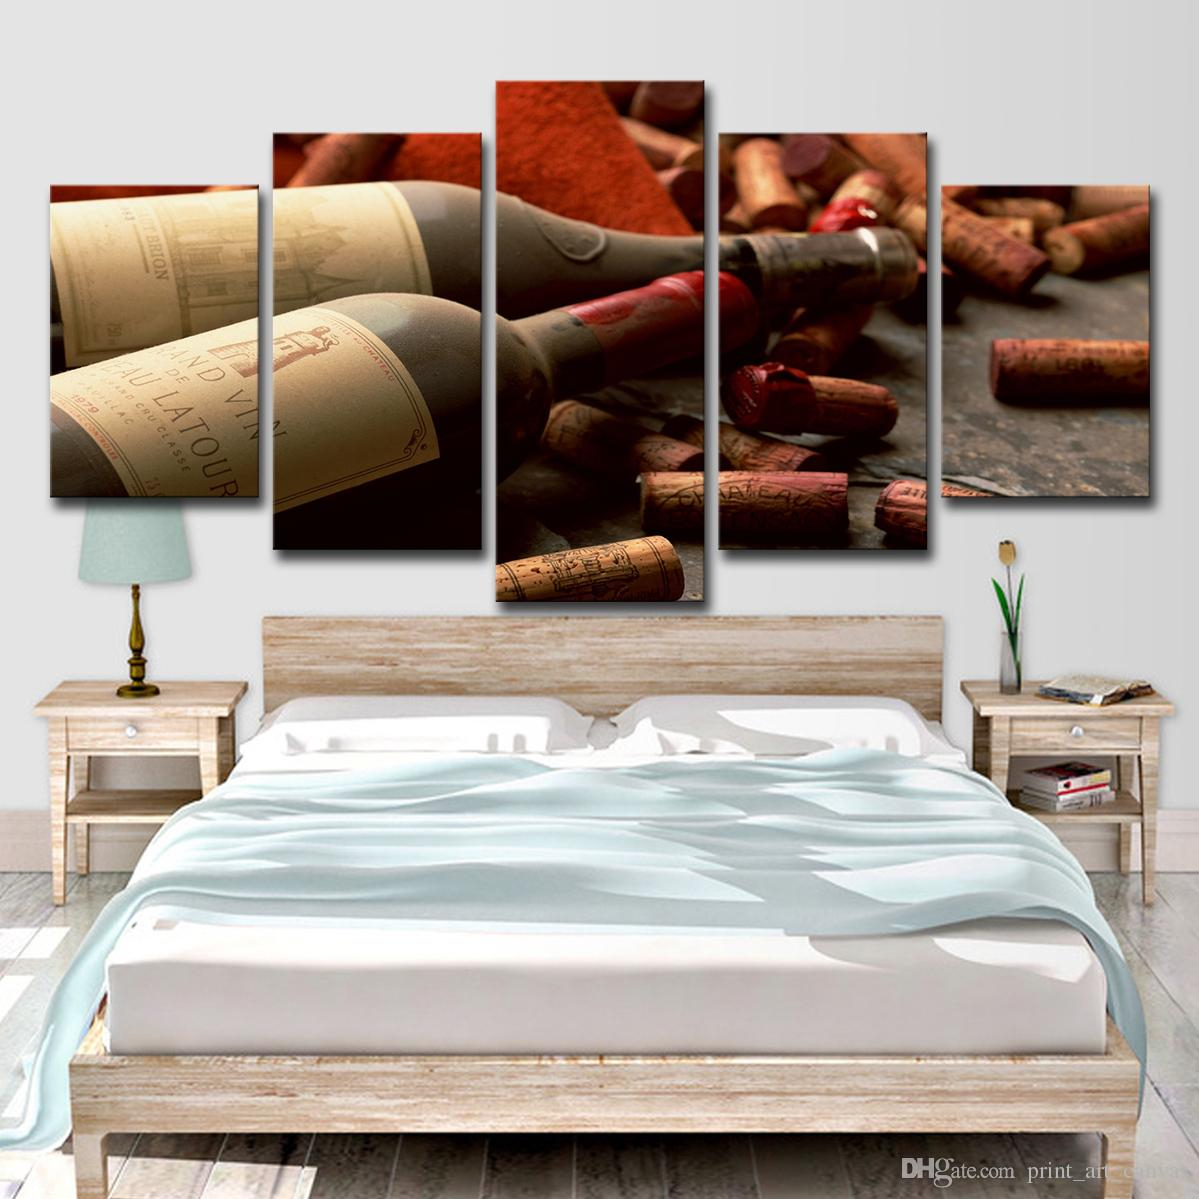 Home Decor Hd Prints Pictures Kitchen Canvas Wall Art Poster 5 Pieces Grape Red Wine Cork Bottle Stopper Paintings For Latour Wall Decor (View 23 of 30)